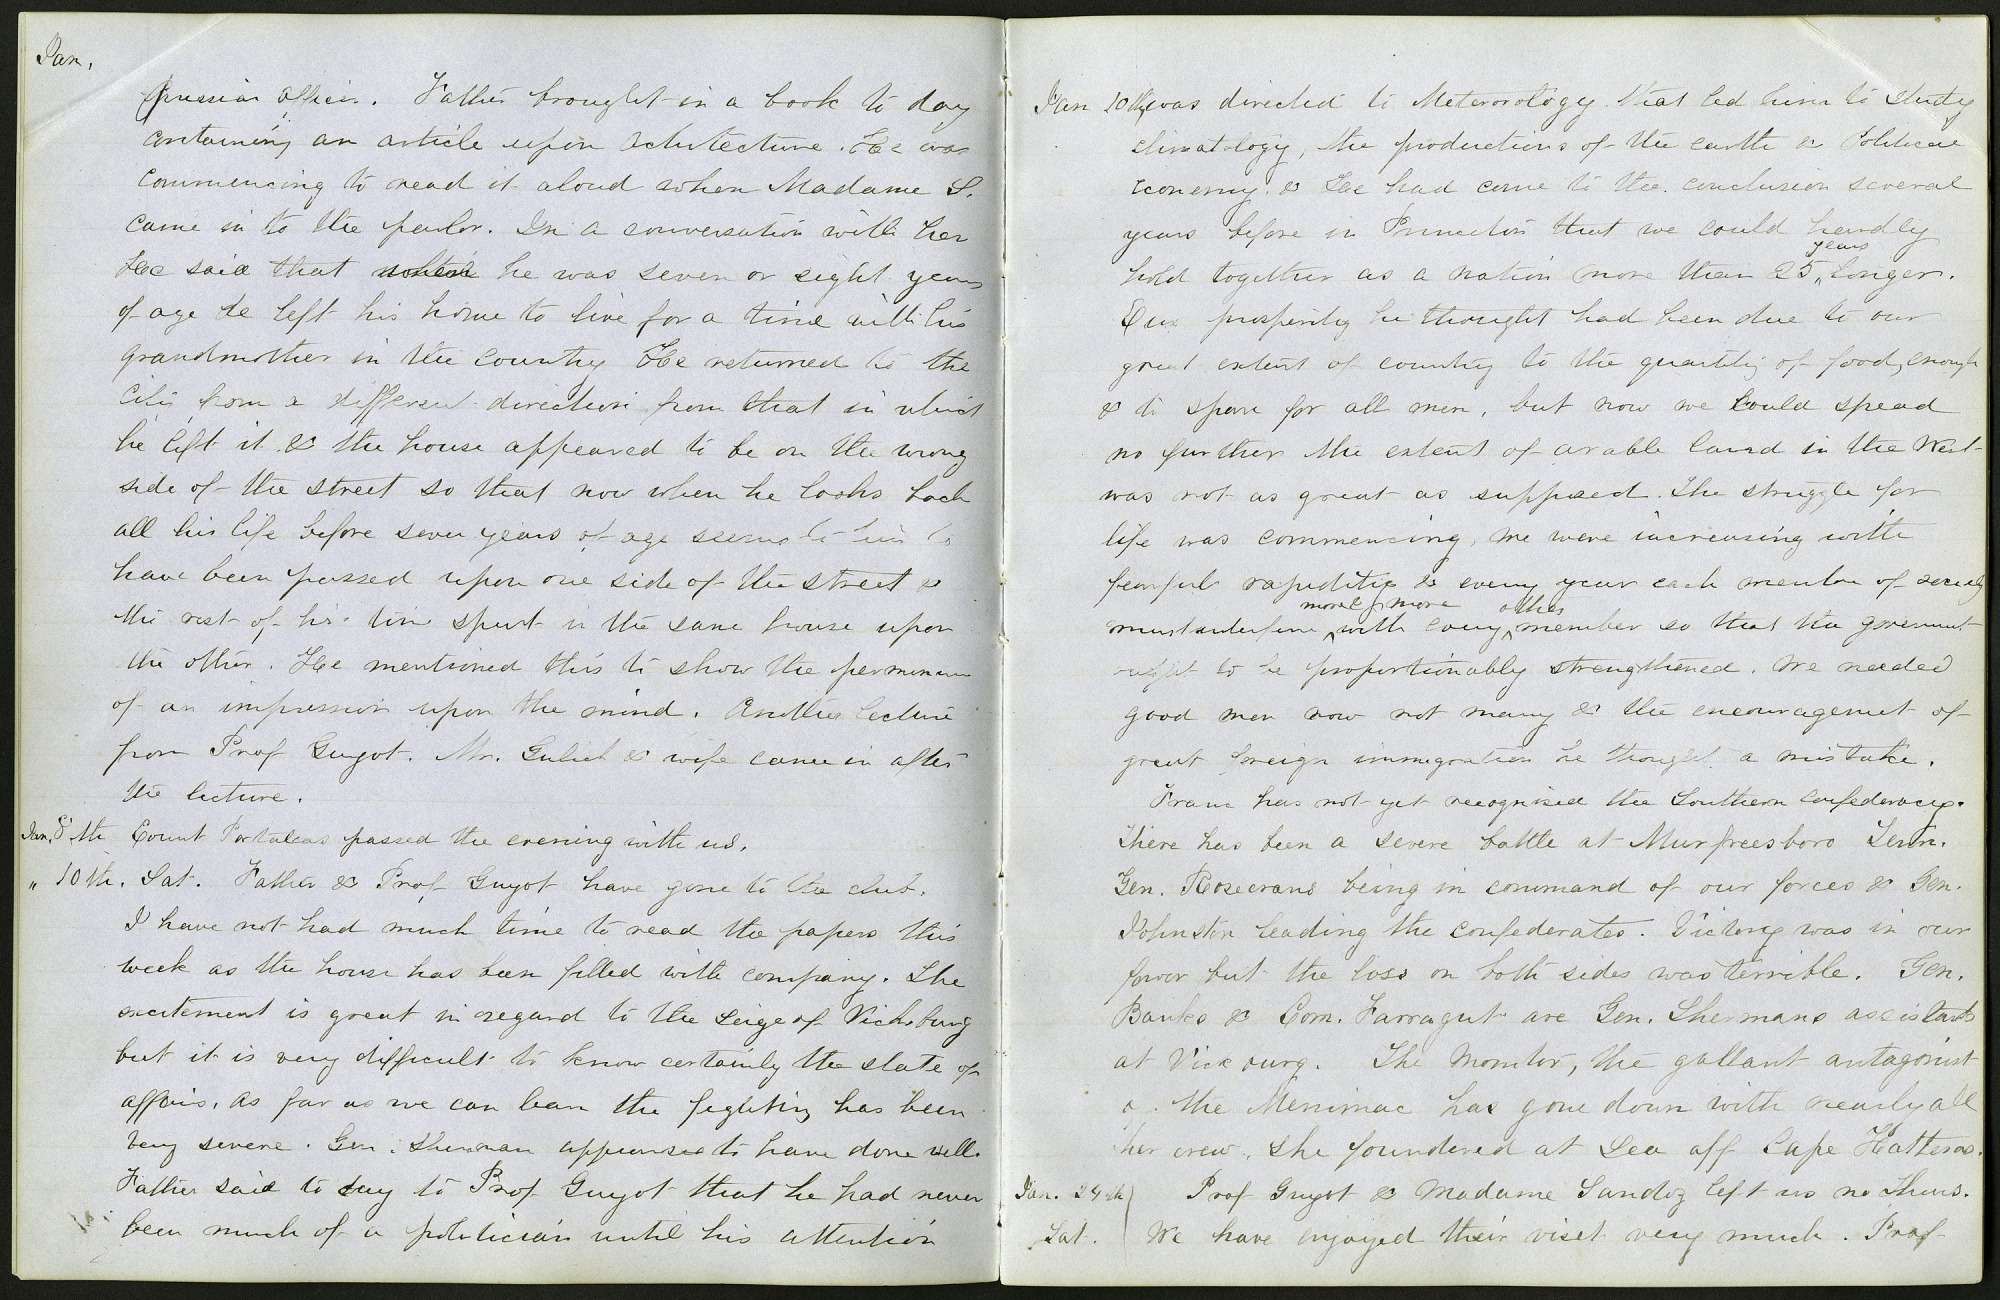 Mary Henry Diary Entries, 1863, on Soldier and their Wives